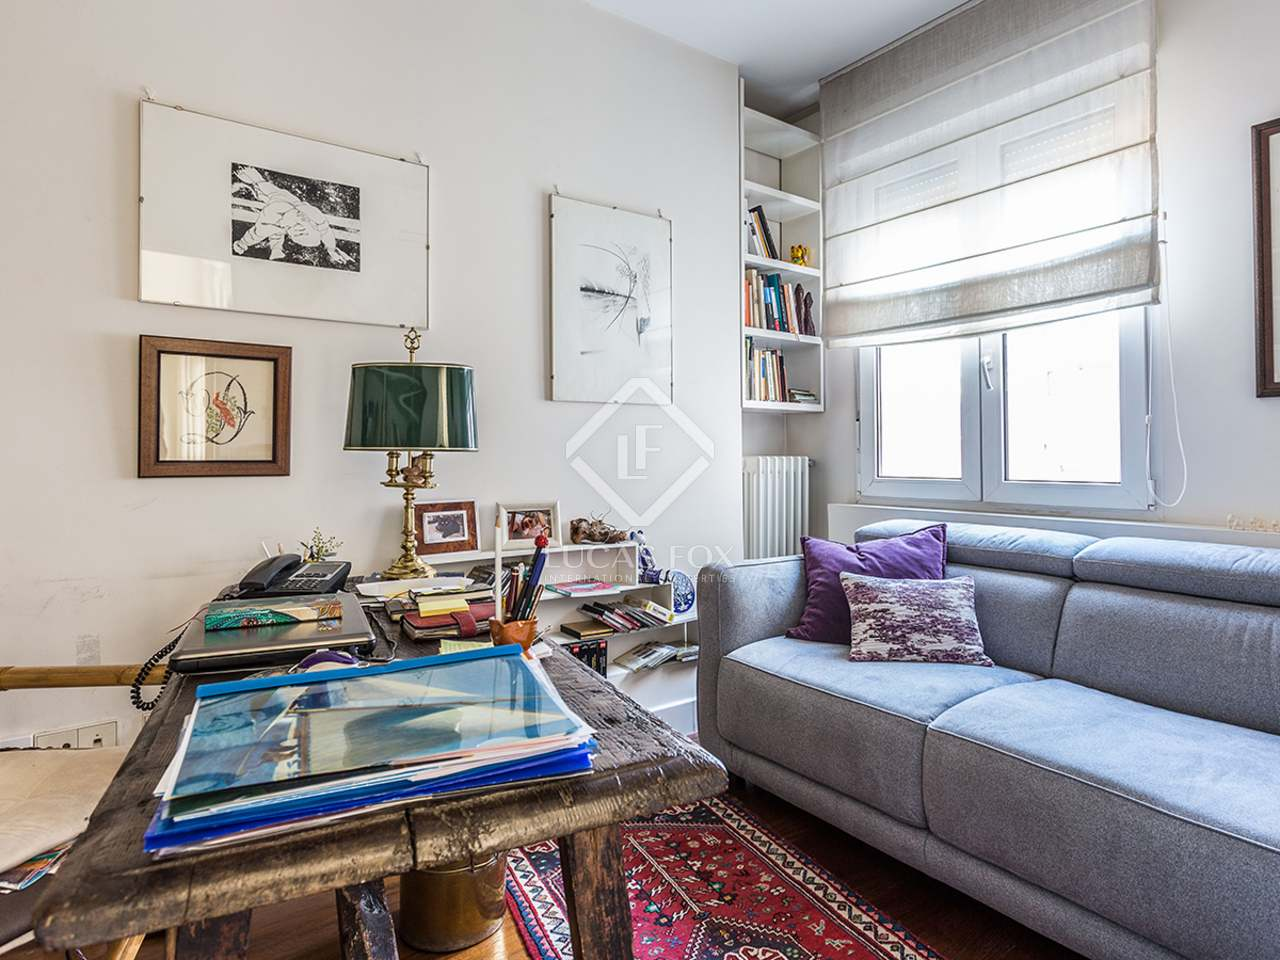 Renovated 2 Bedroom Penthouse With A Terrace For Sale In Salamanca